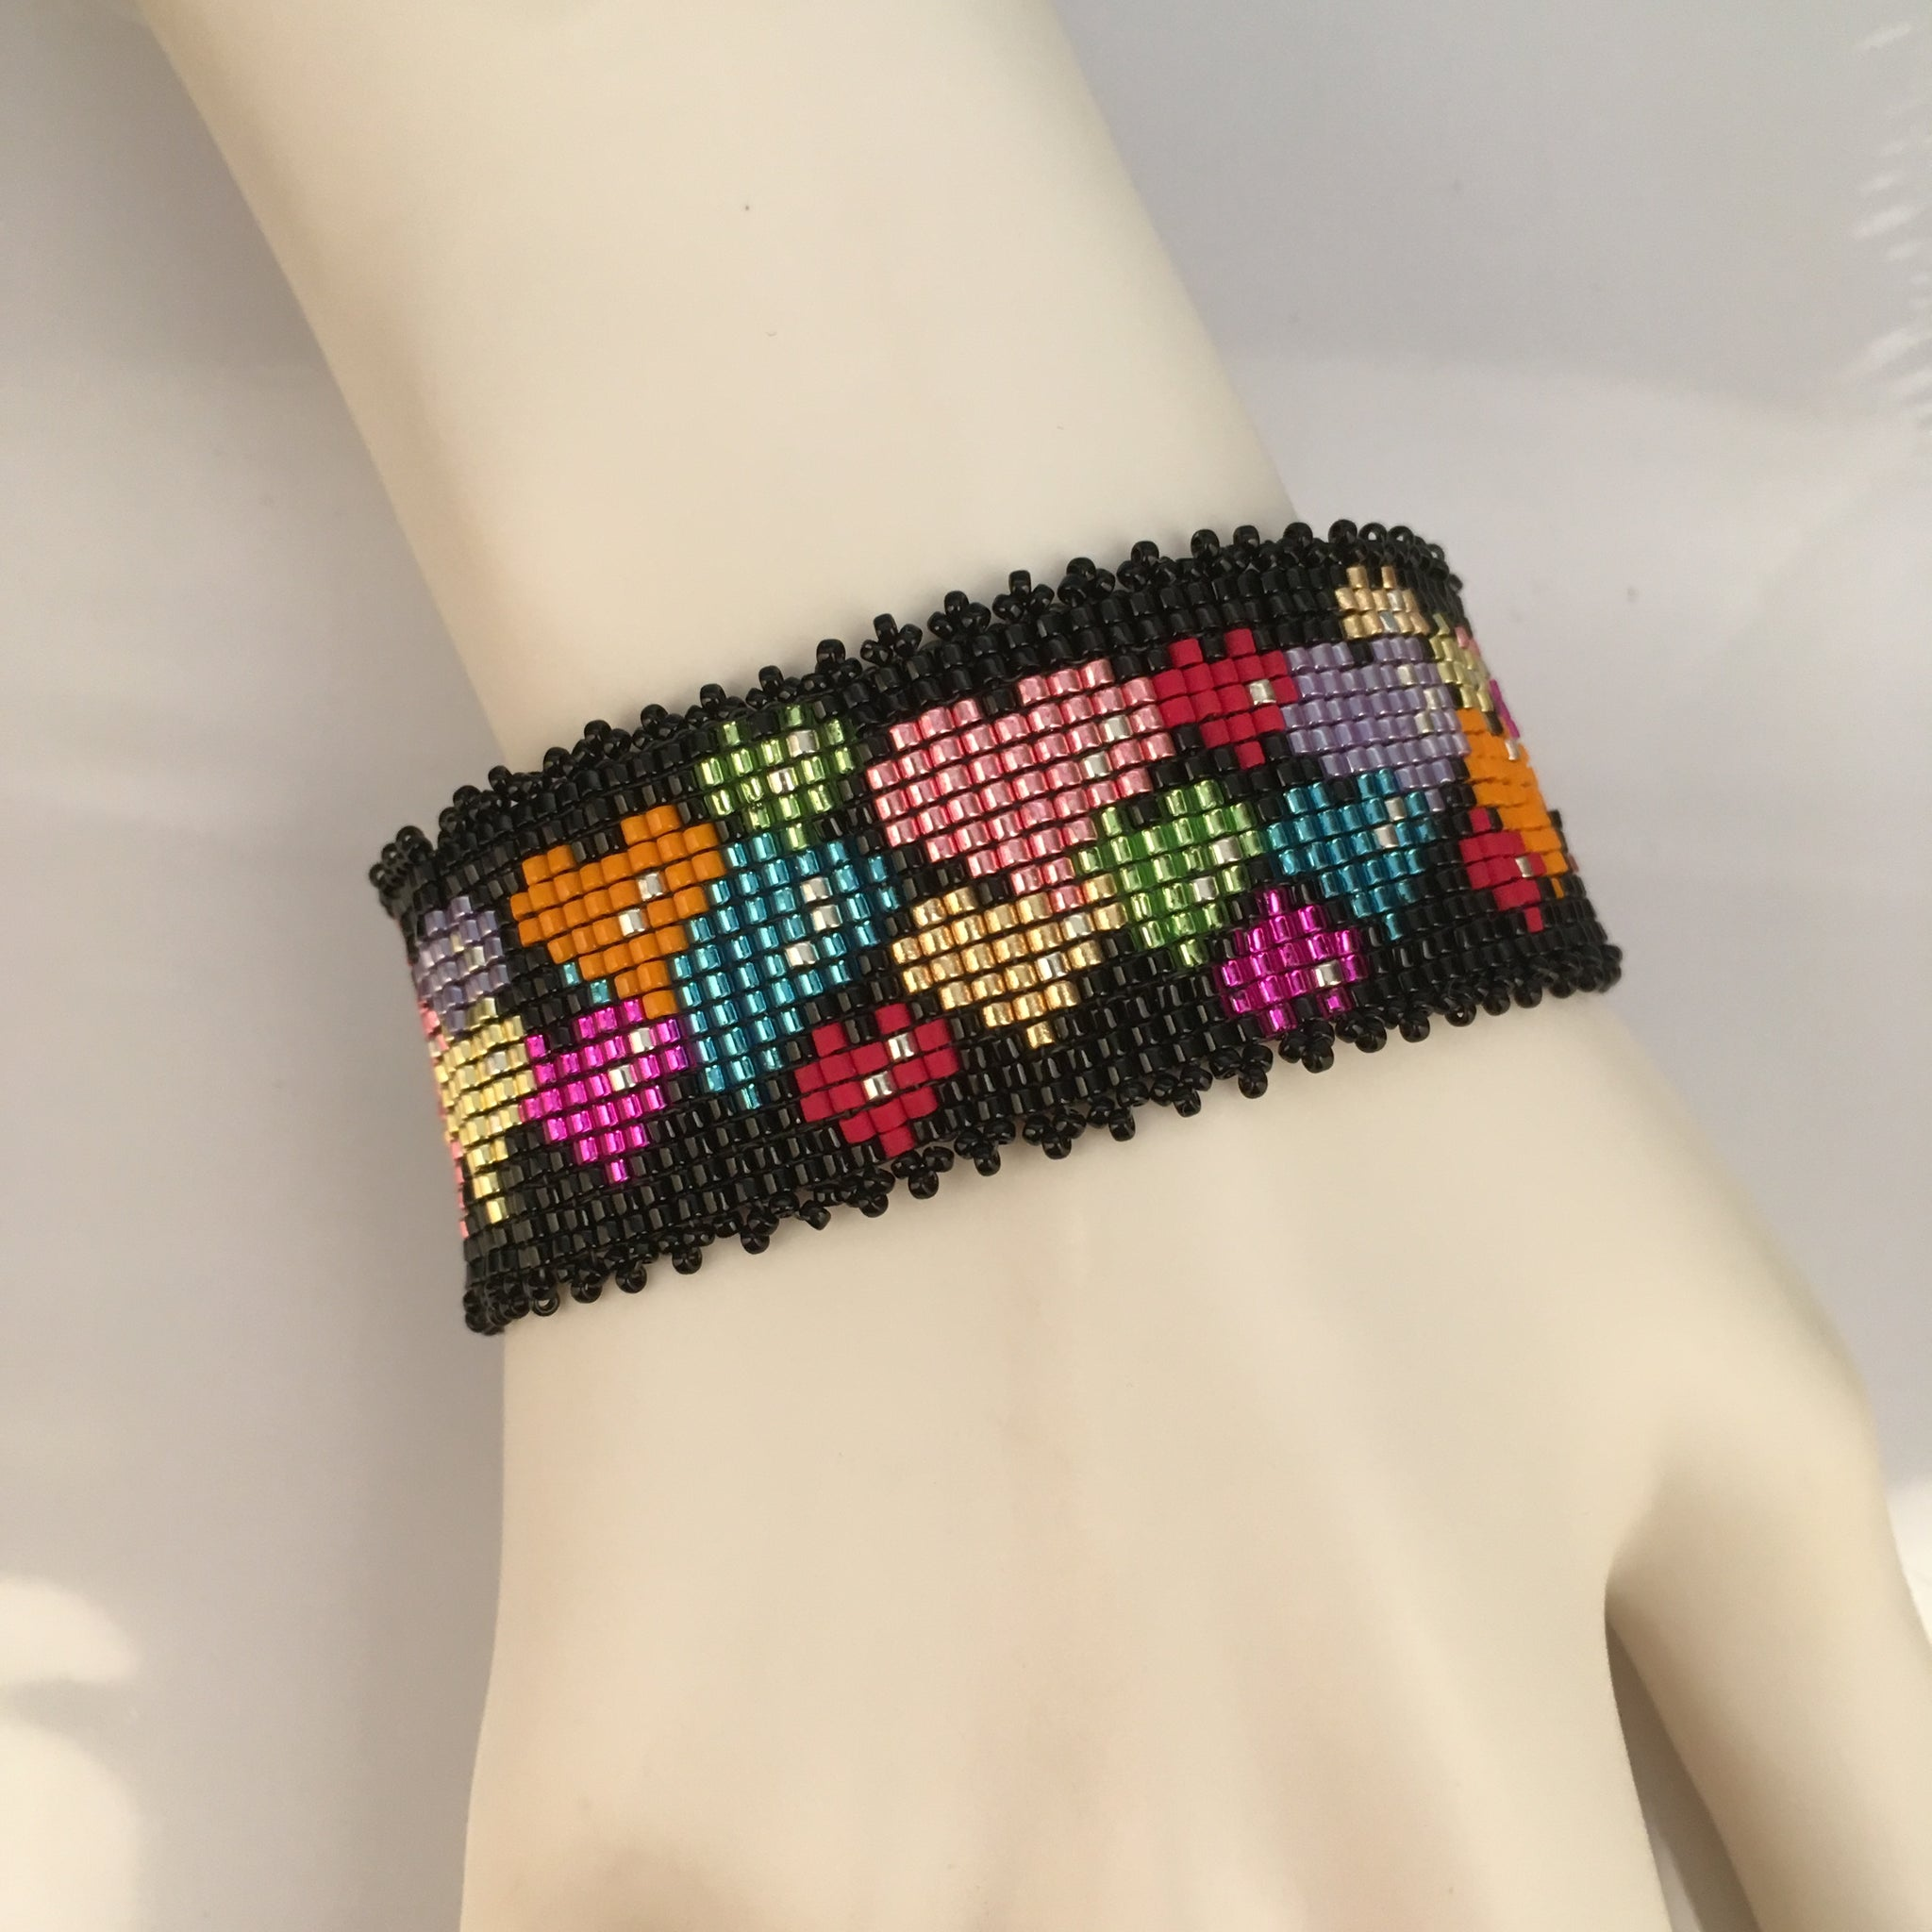 Floating Hearts Valentine Day Bead Loom Bracelet Pattern PDF by Susan Pelligra